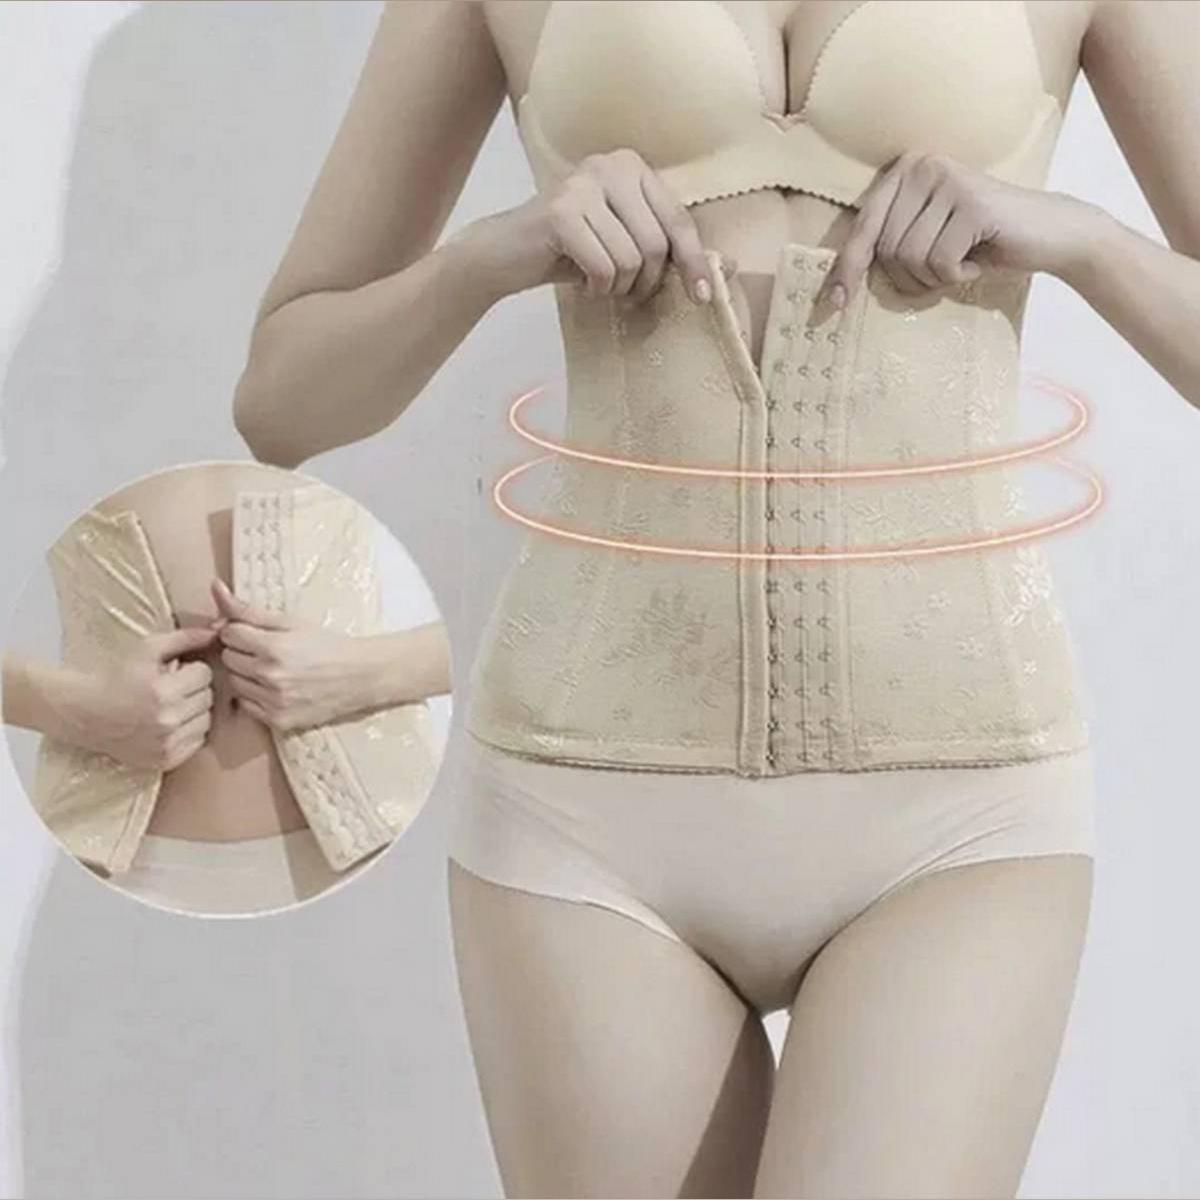 Ladies Tummy Control Belt With Front Closure